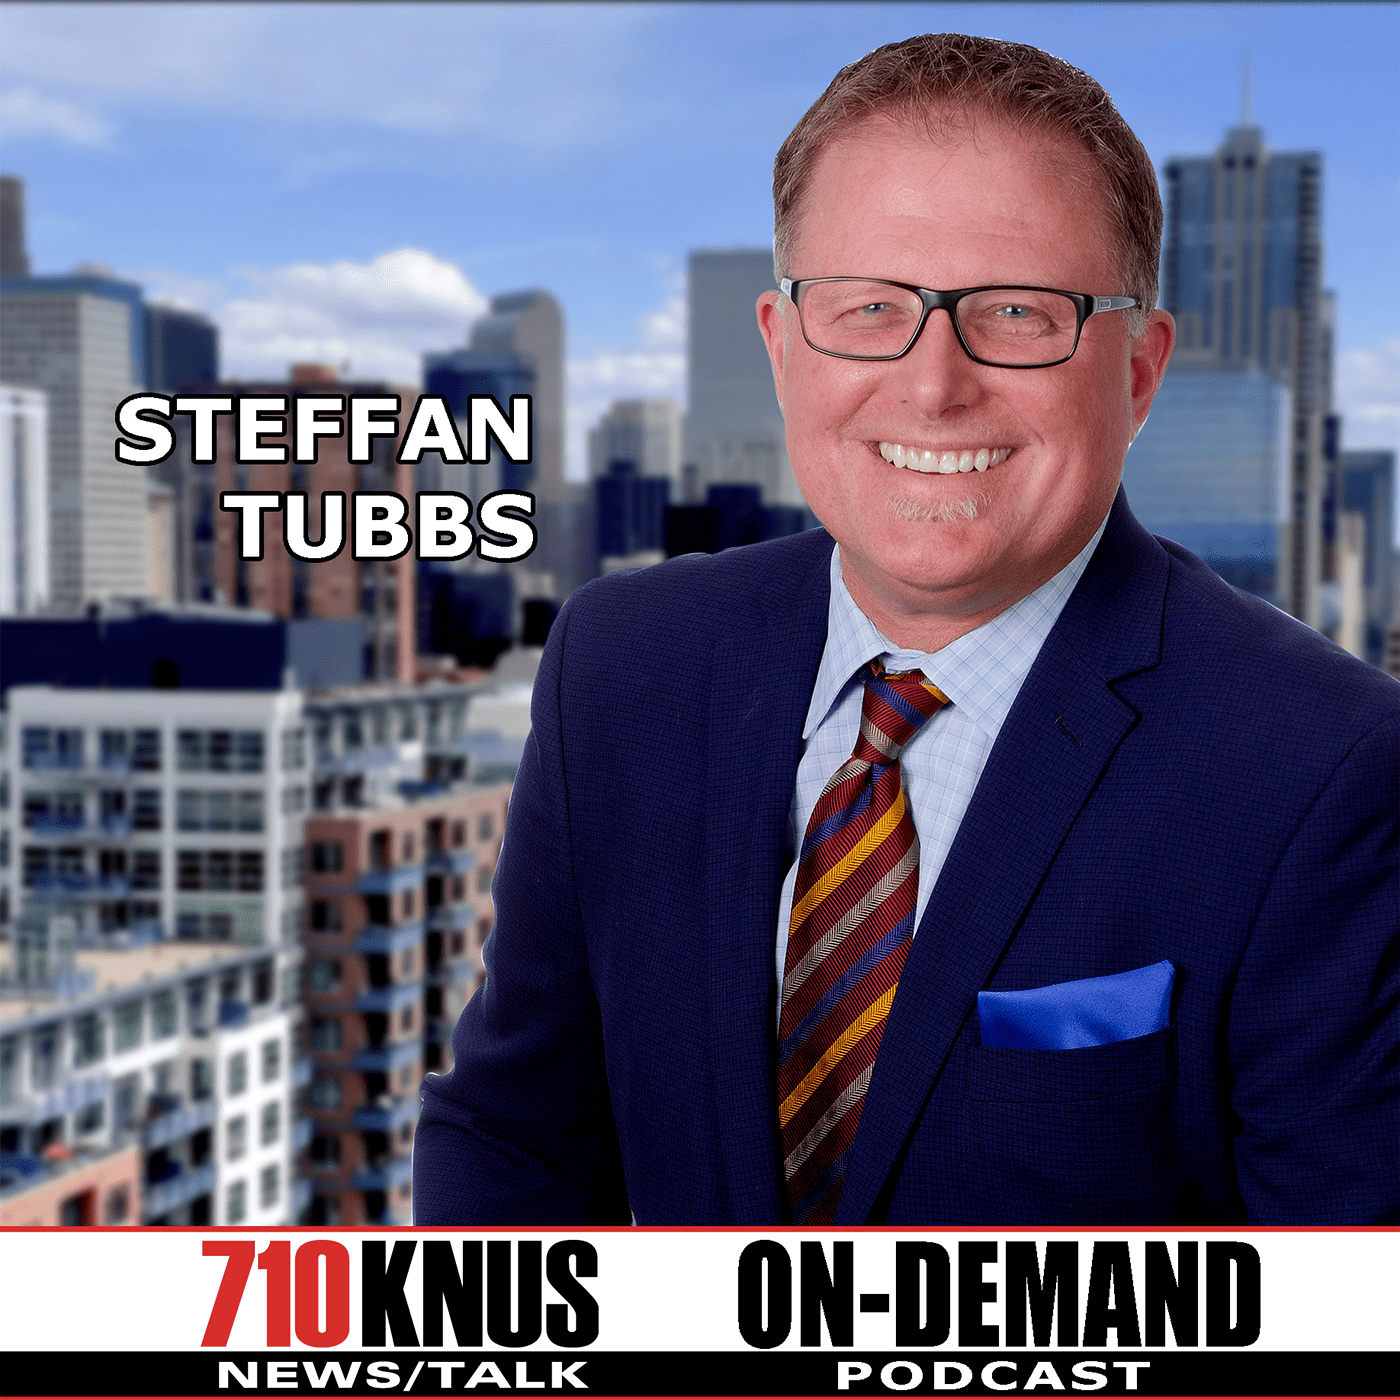 The Steffan Tubbs Show Podcast